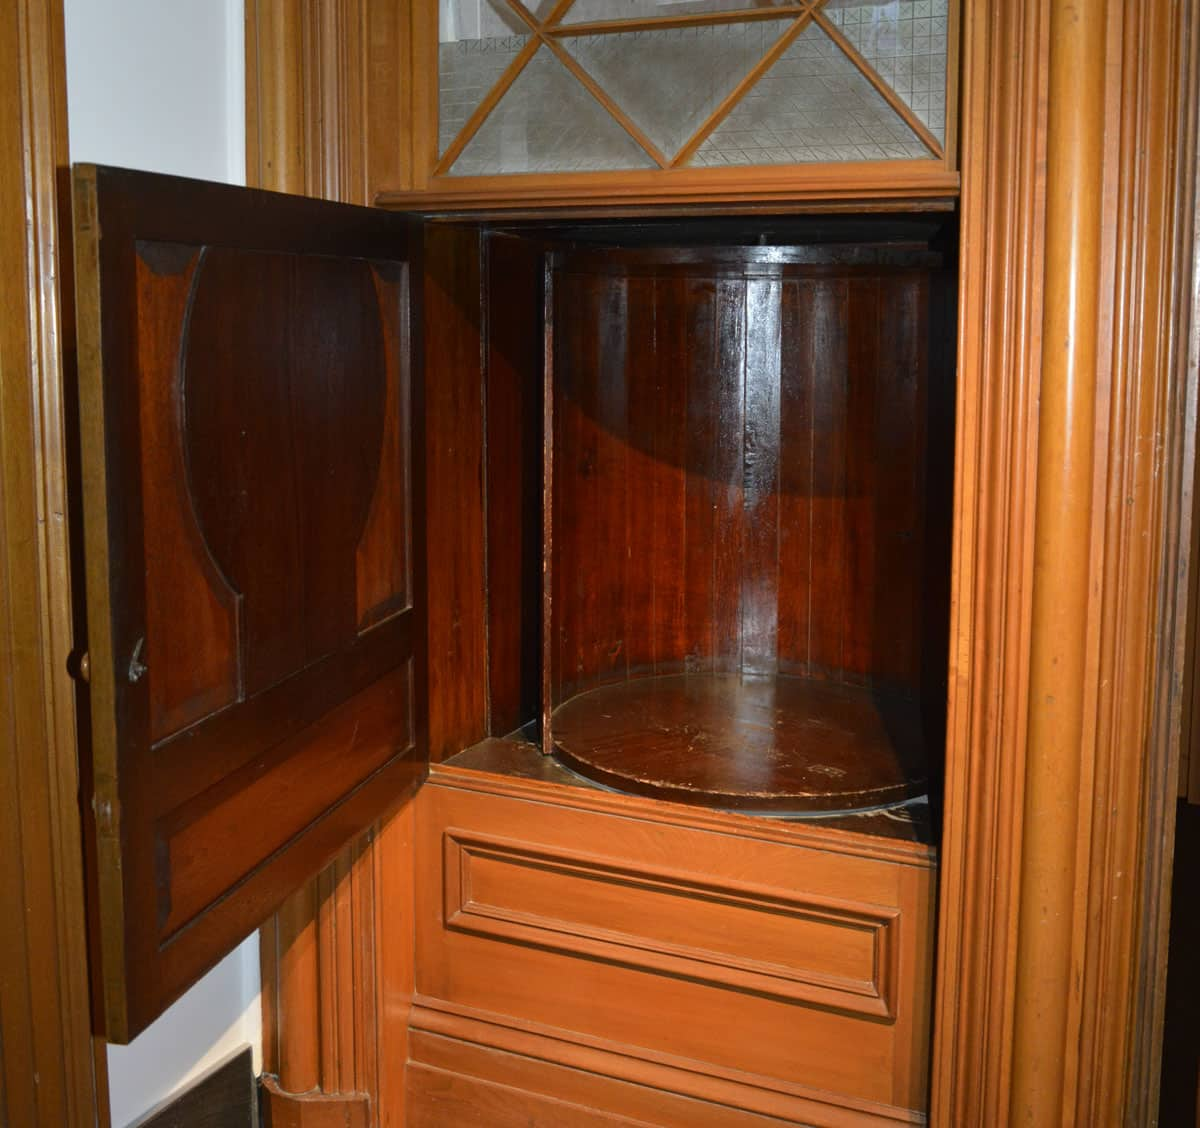 Quebec Augustinian Monastery Museum–Can You Guess the Historical Use for this Revolving Cupboard?